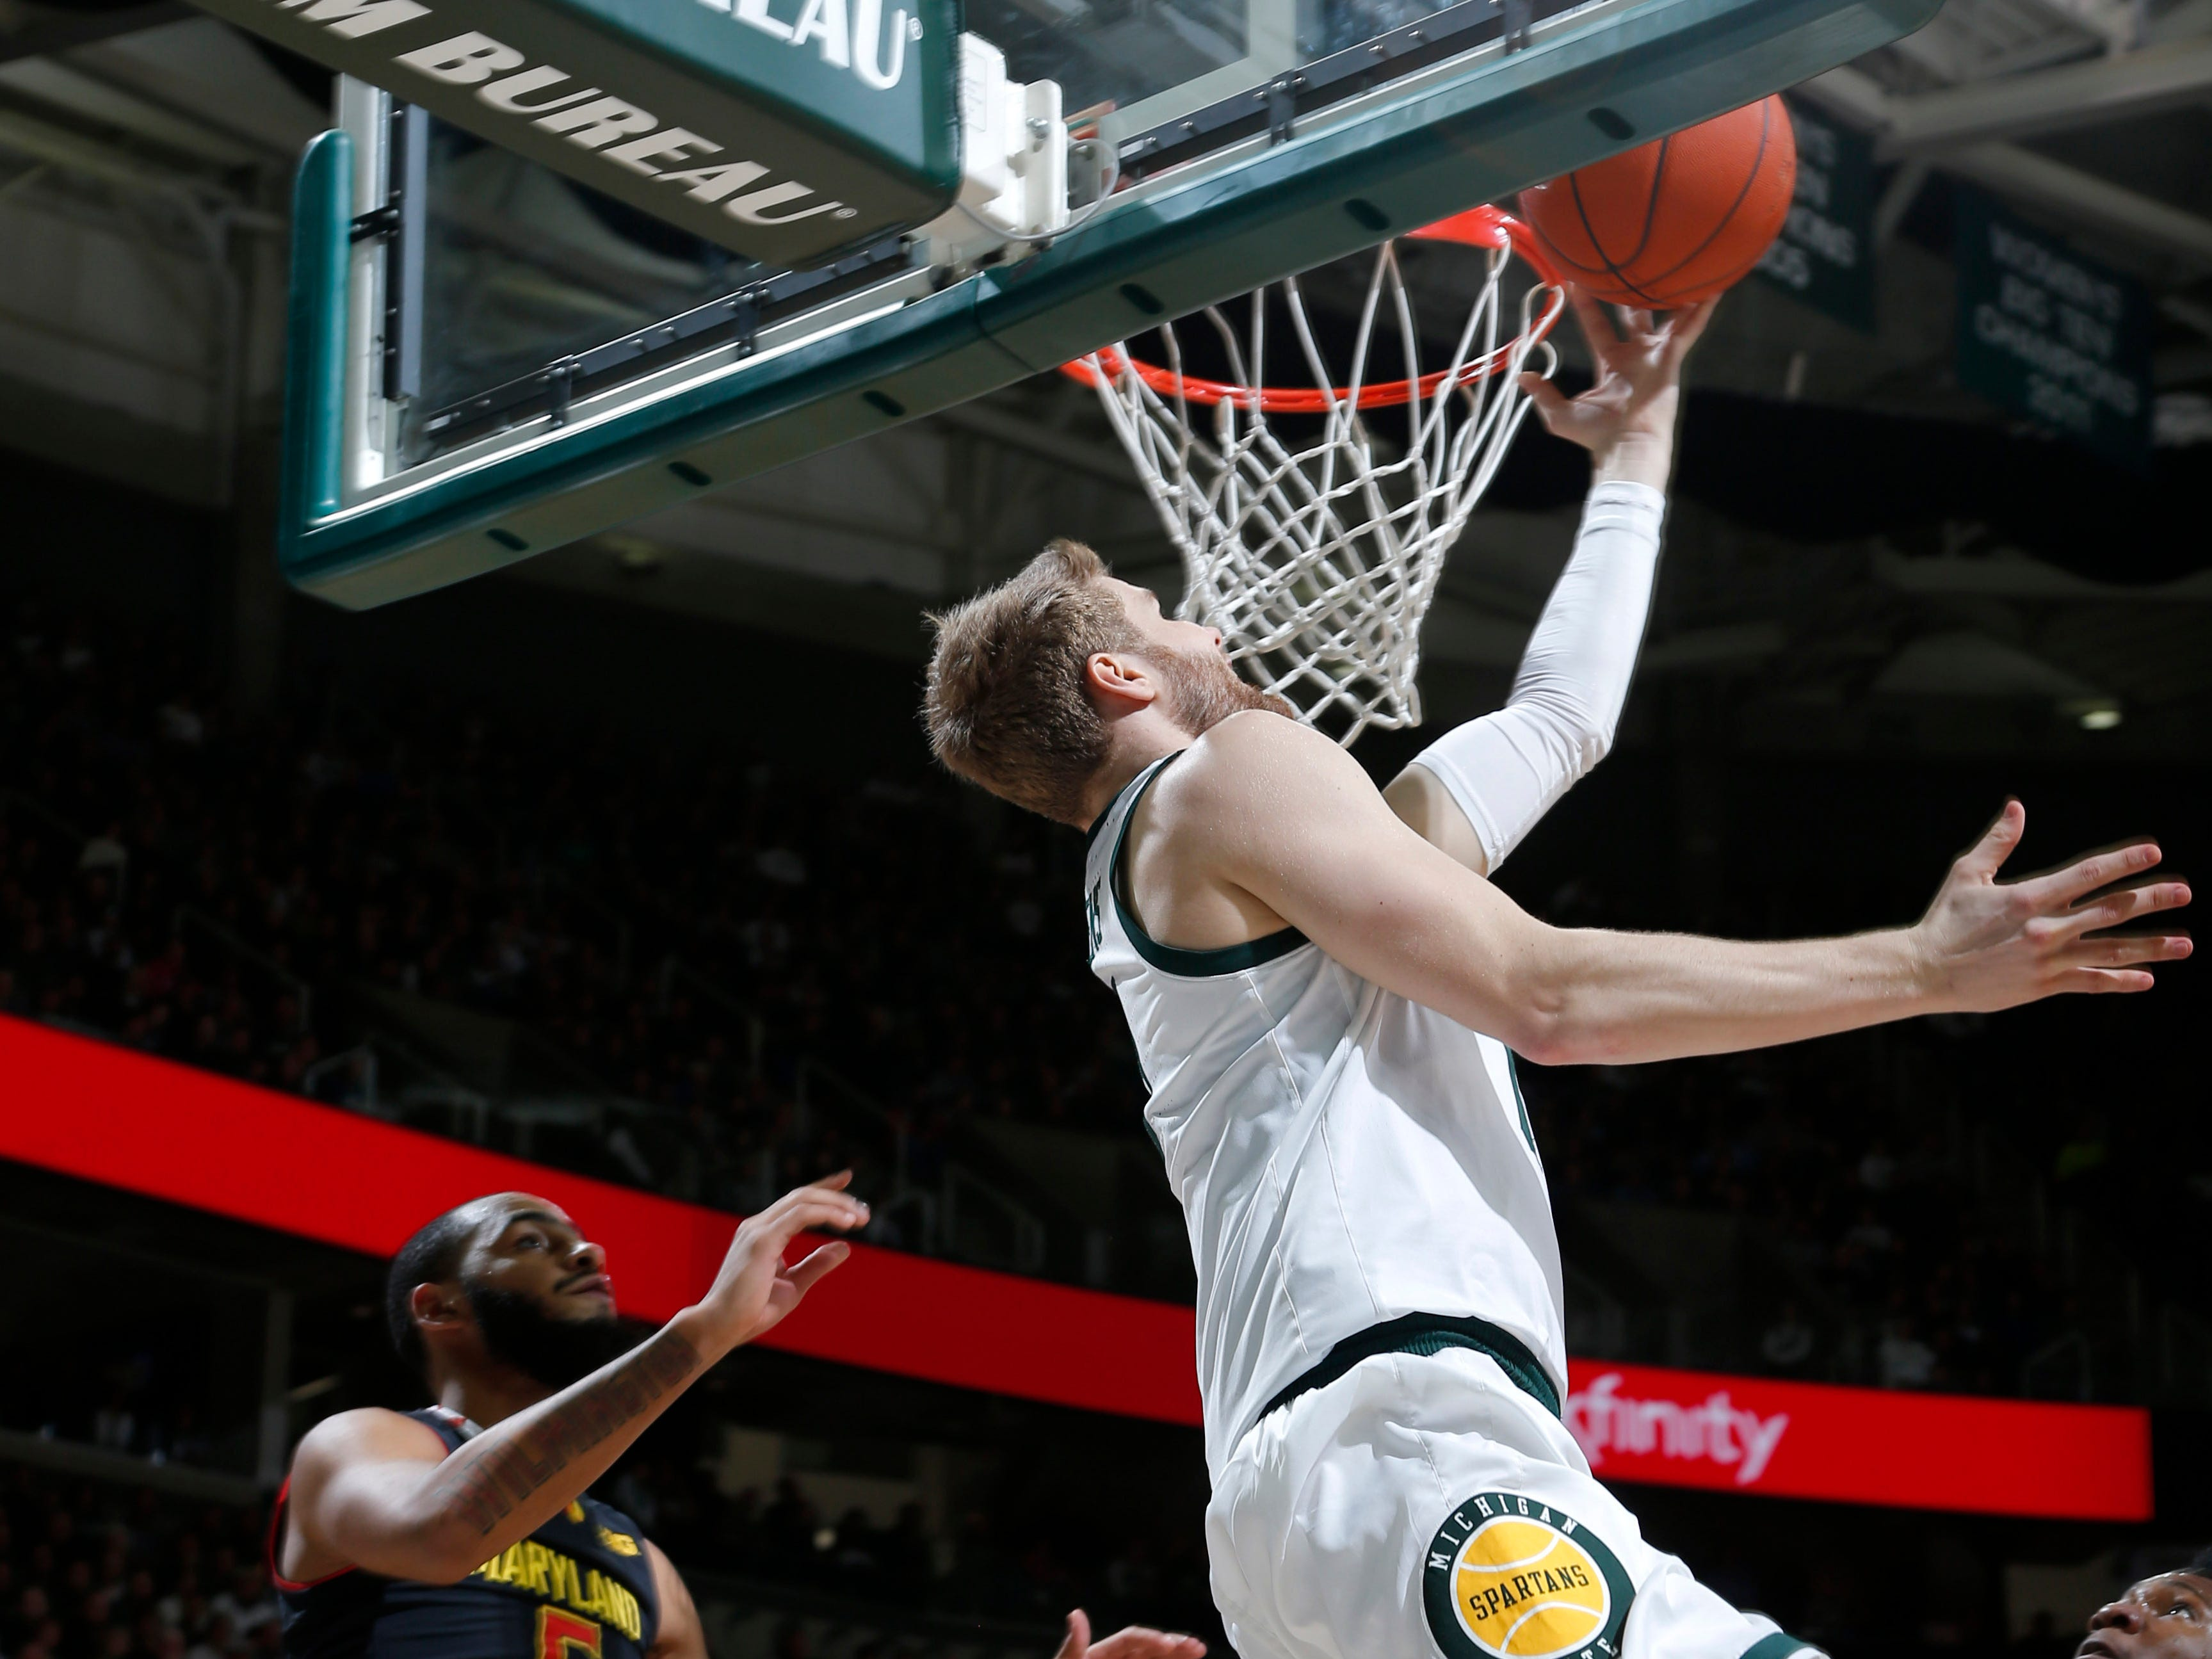 Michigan State's Kyle Ahrens, center, scores on a reverse layup against Maryland's Eric Ayala, left, and Bruno Fernando, right, during the second half of an NCAA college basketball game, Monday, Jan. 21, 2019, in East Lansing, Mich. Michigan State won 69-55.